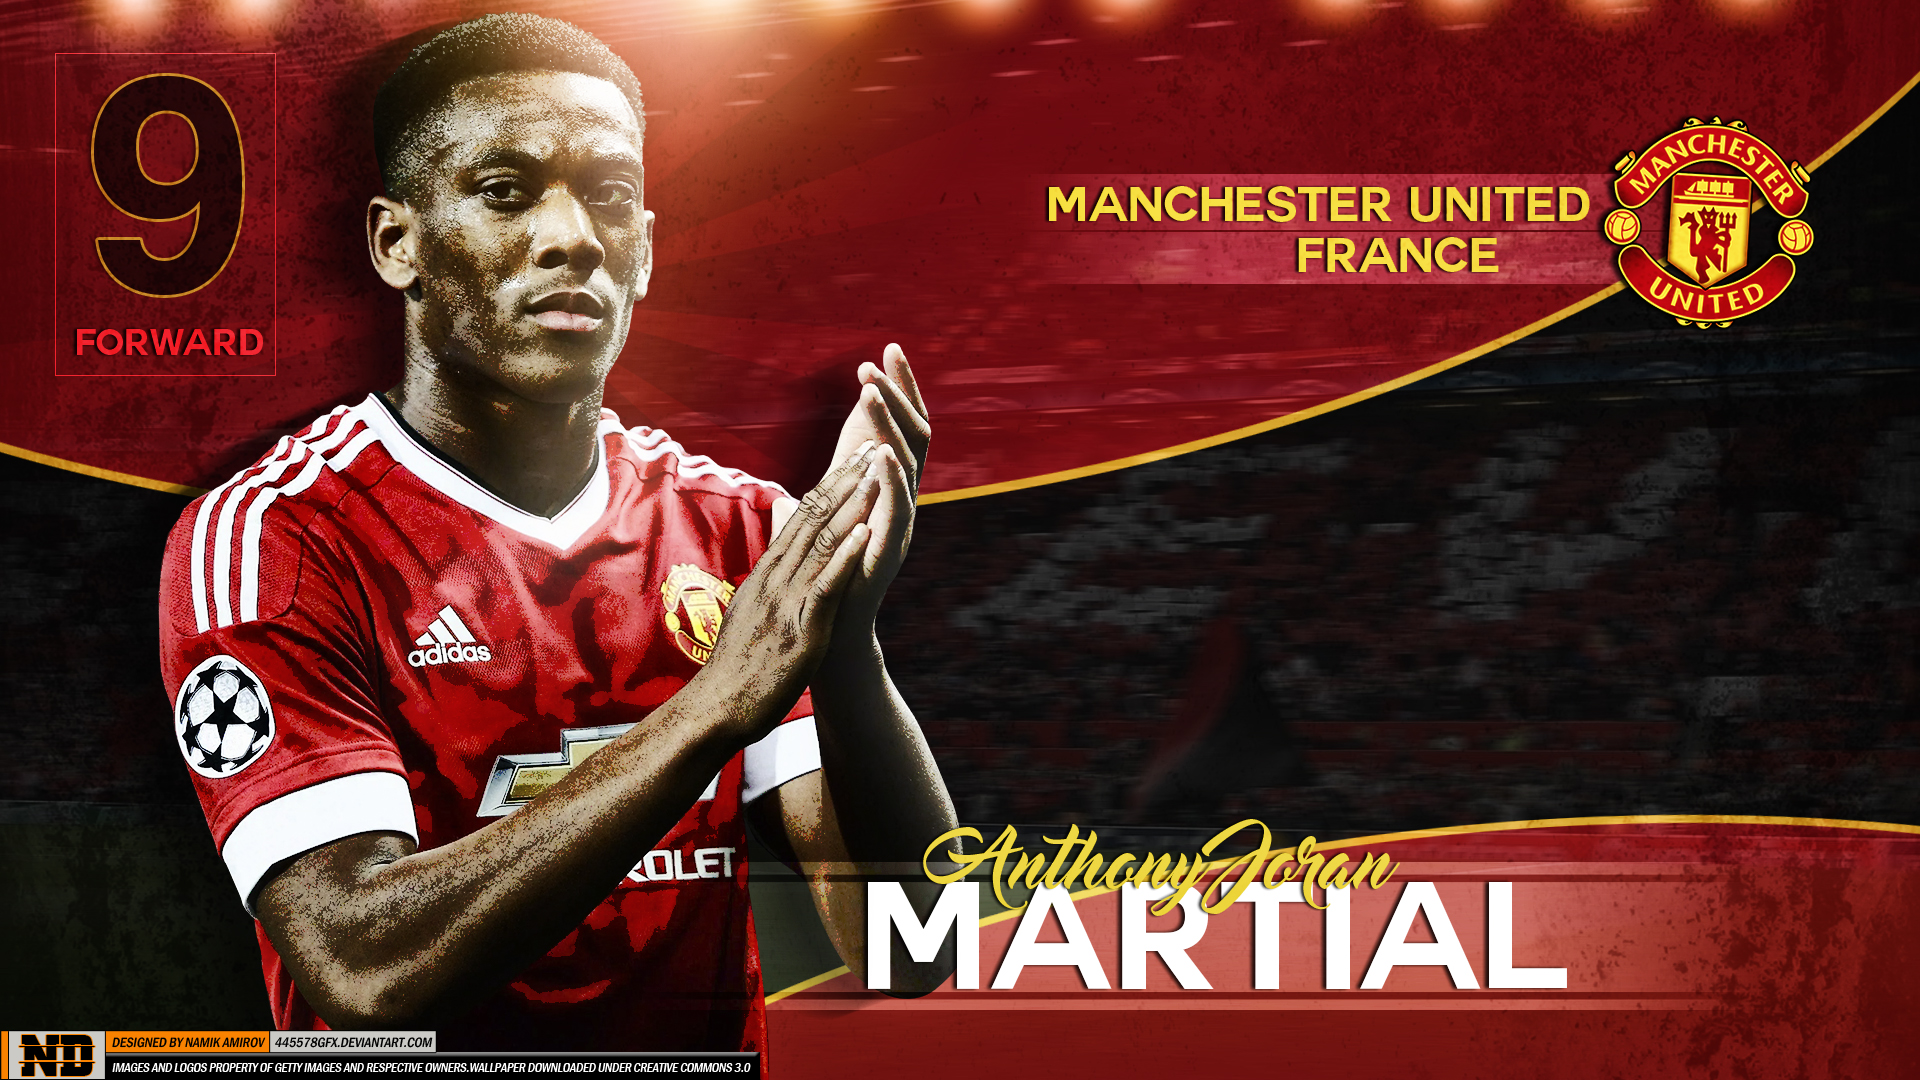 09 Anthony Martial By Namo,7 By 445578gfx On DeviantArt